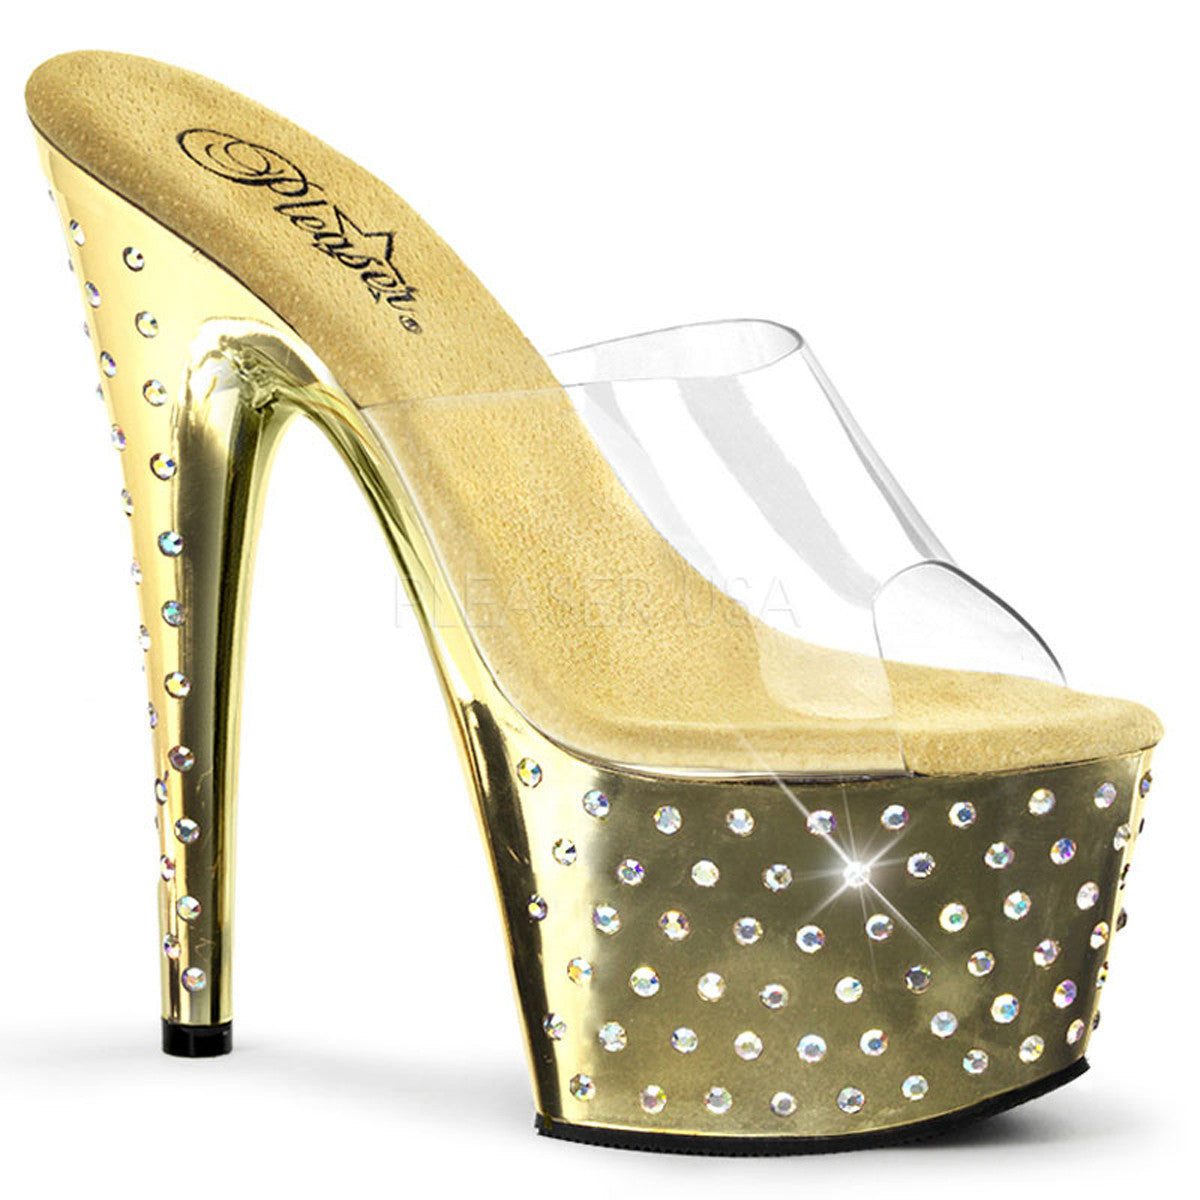 PLEASER STARDUST-701 Clear-Gold Chrome Platform Slides - Shoecup.com